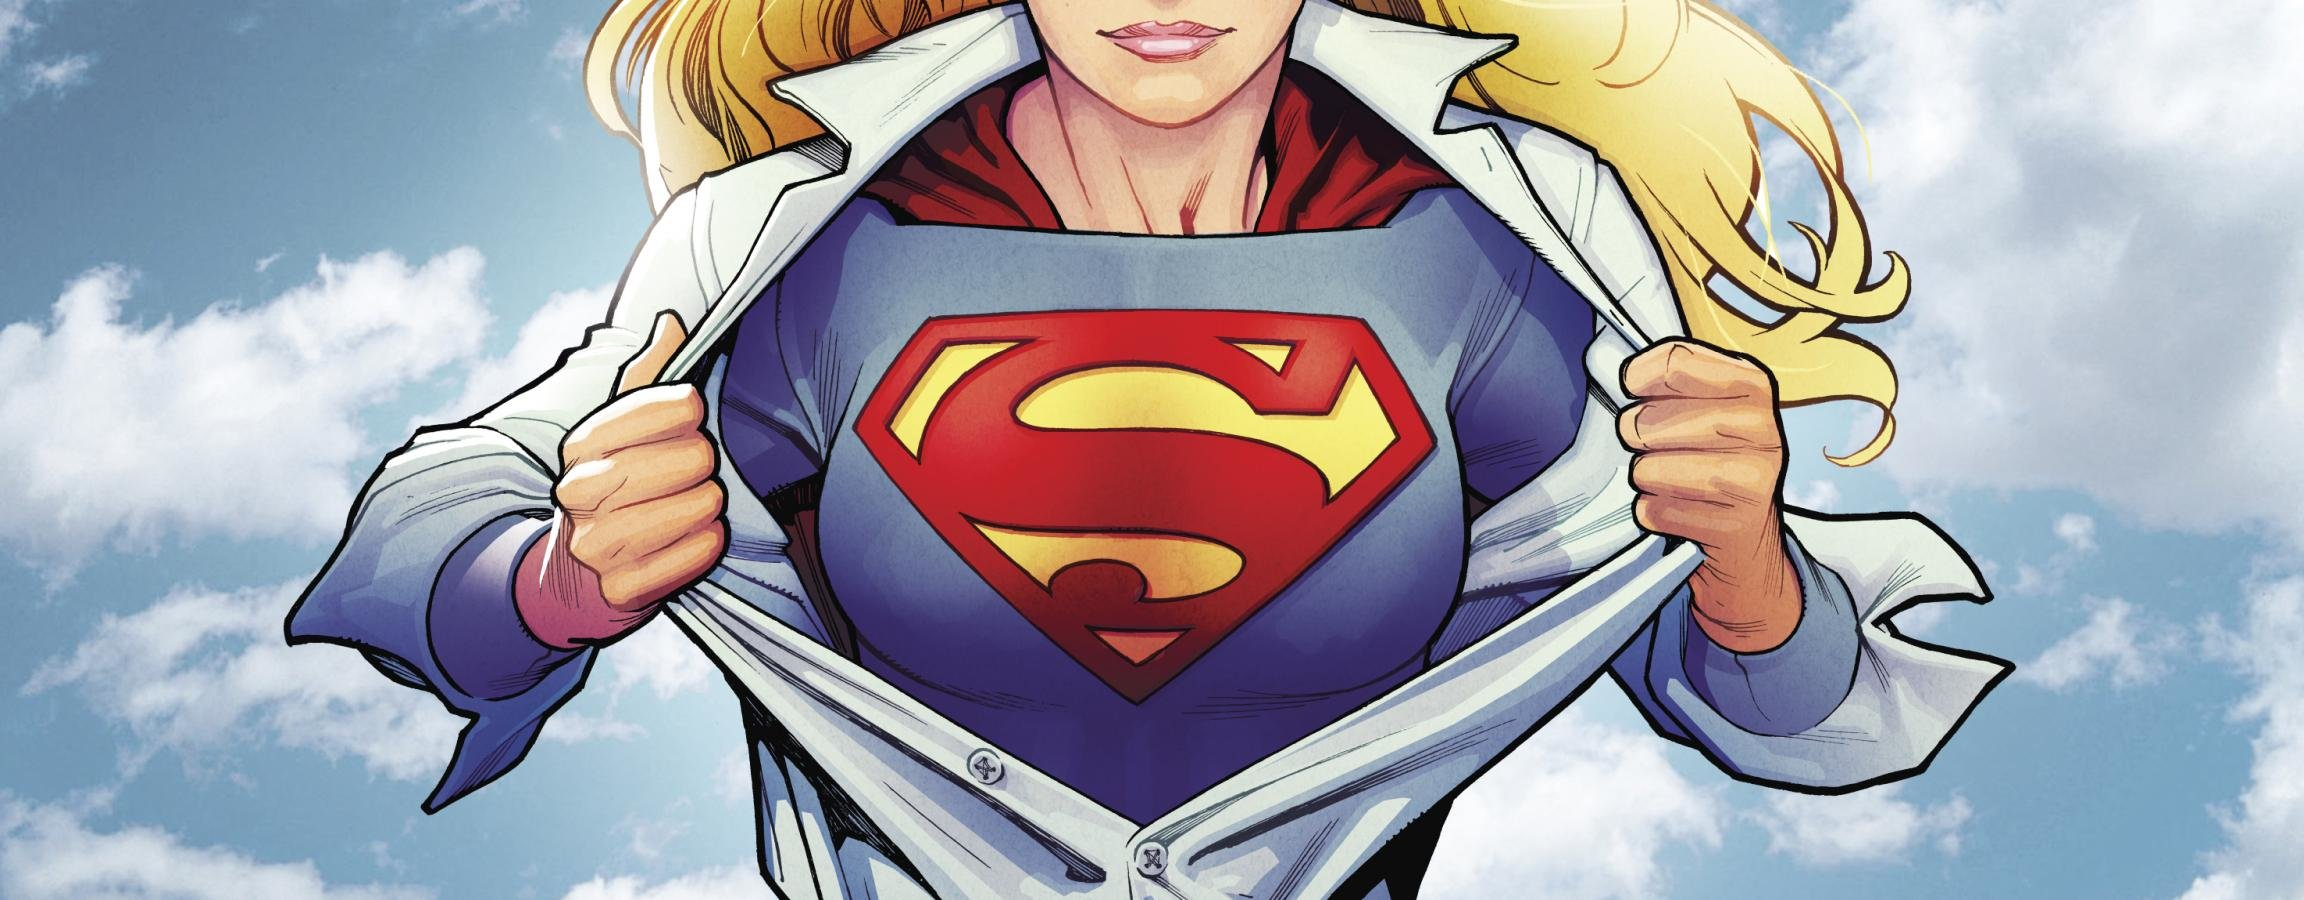 Awesome Supergirl free wallpaper ID:26200 for dual monitor 2304x900 PC